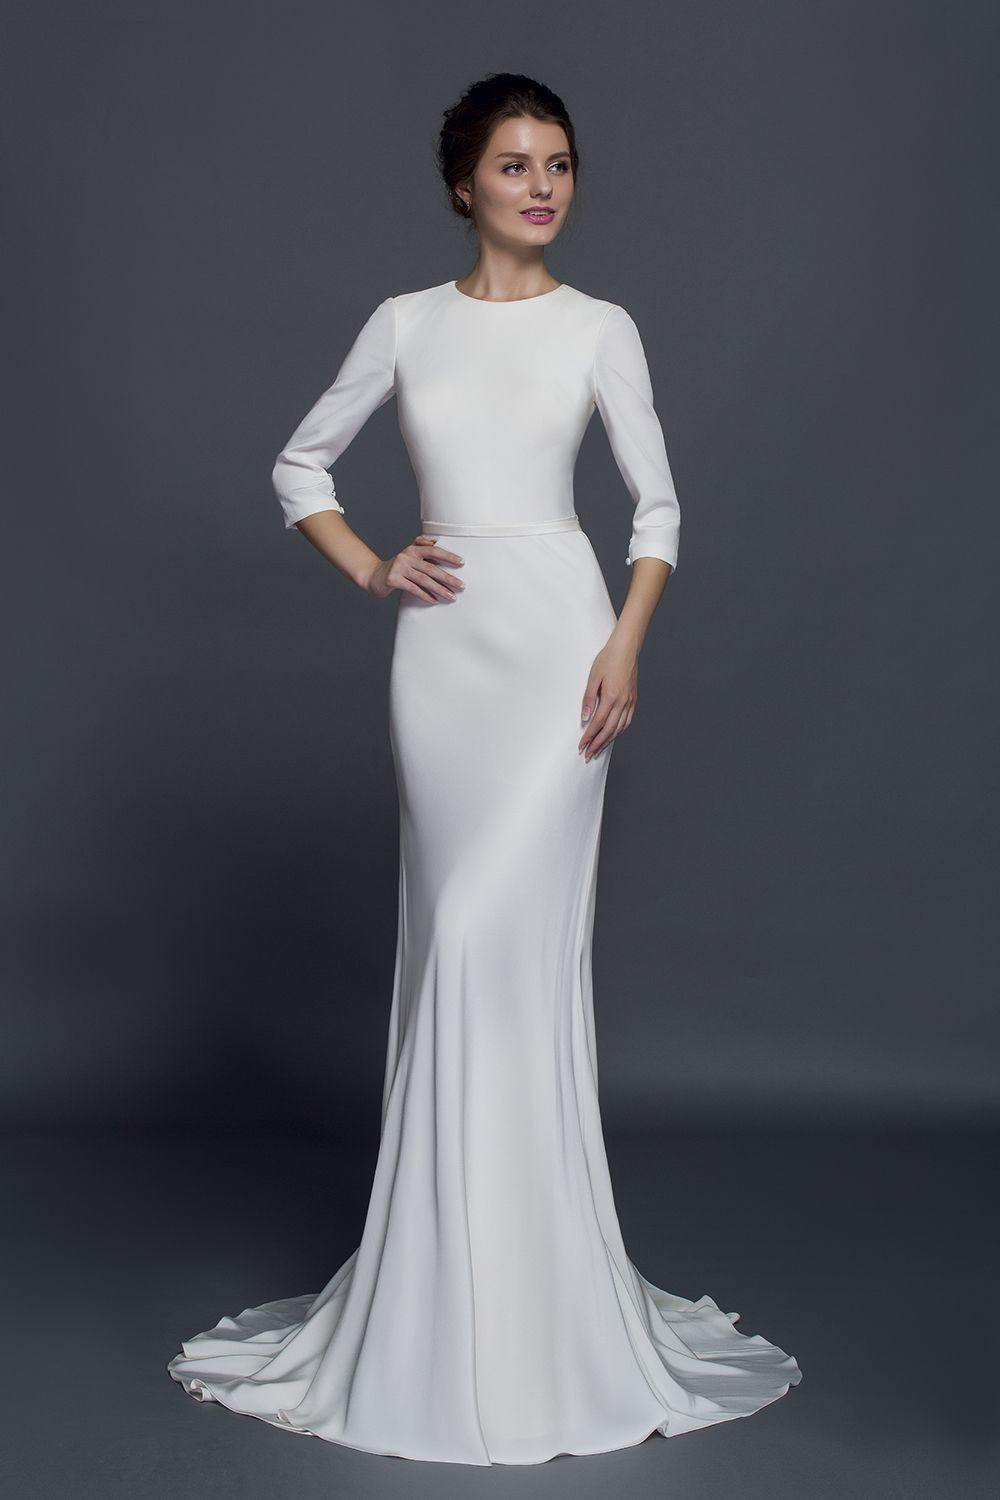 This Fitted Gown Is Carefully Constructed From Real Silk Crepe The 3 4 Sle Modest Long Sleeve Wedding Dresses Silk Wedding Gown Conservative Wedding Dress [ 1500 x 1000 Pixel ]